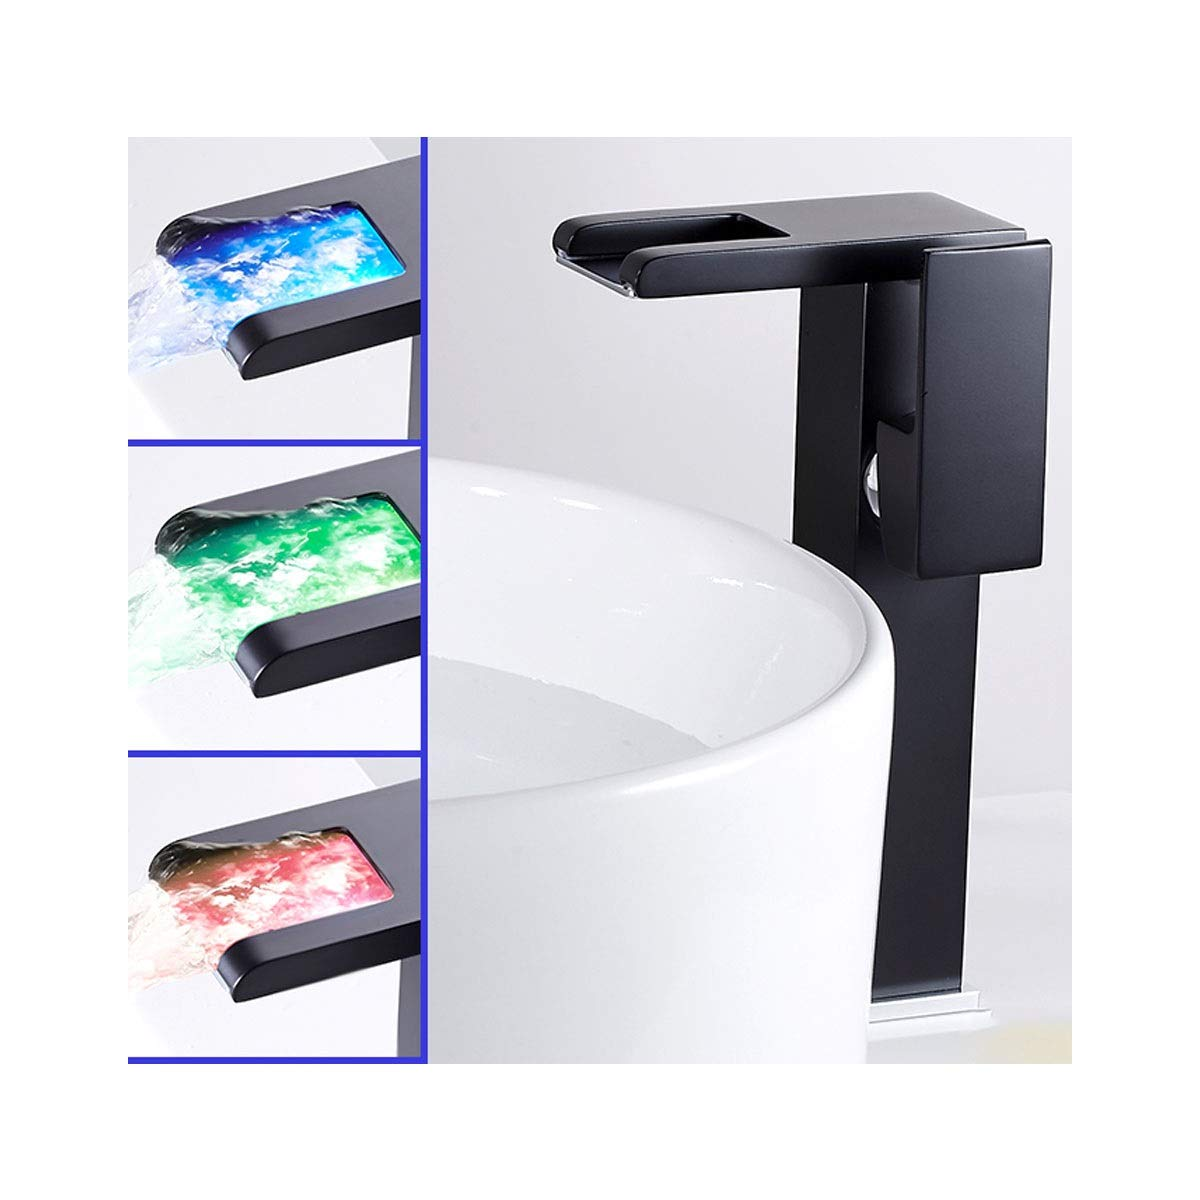 QIANZICAIDIANJIA Faucet, LED Temperature Control Faucet, Hot And Cold Water Faucet, Bathroom Creative New All-copper Basin Faucet stainless steel faucet (Color : Black, Size : B) by QIANZICAIDIANJIA